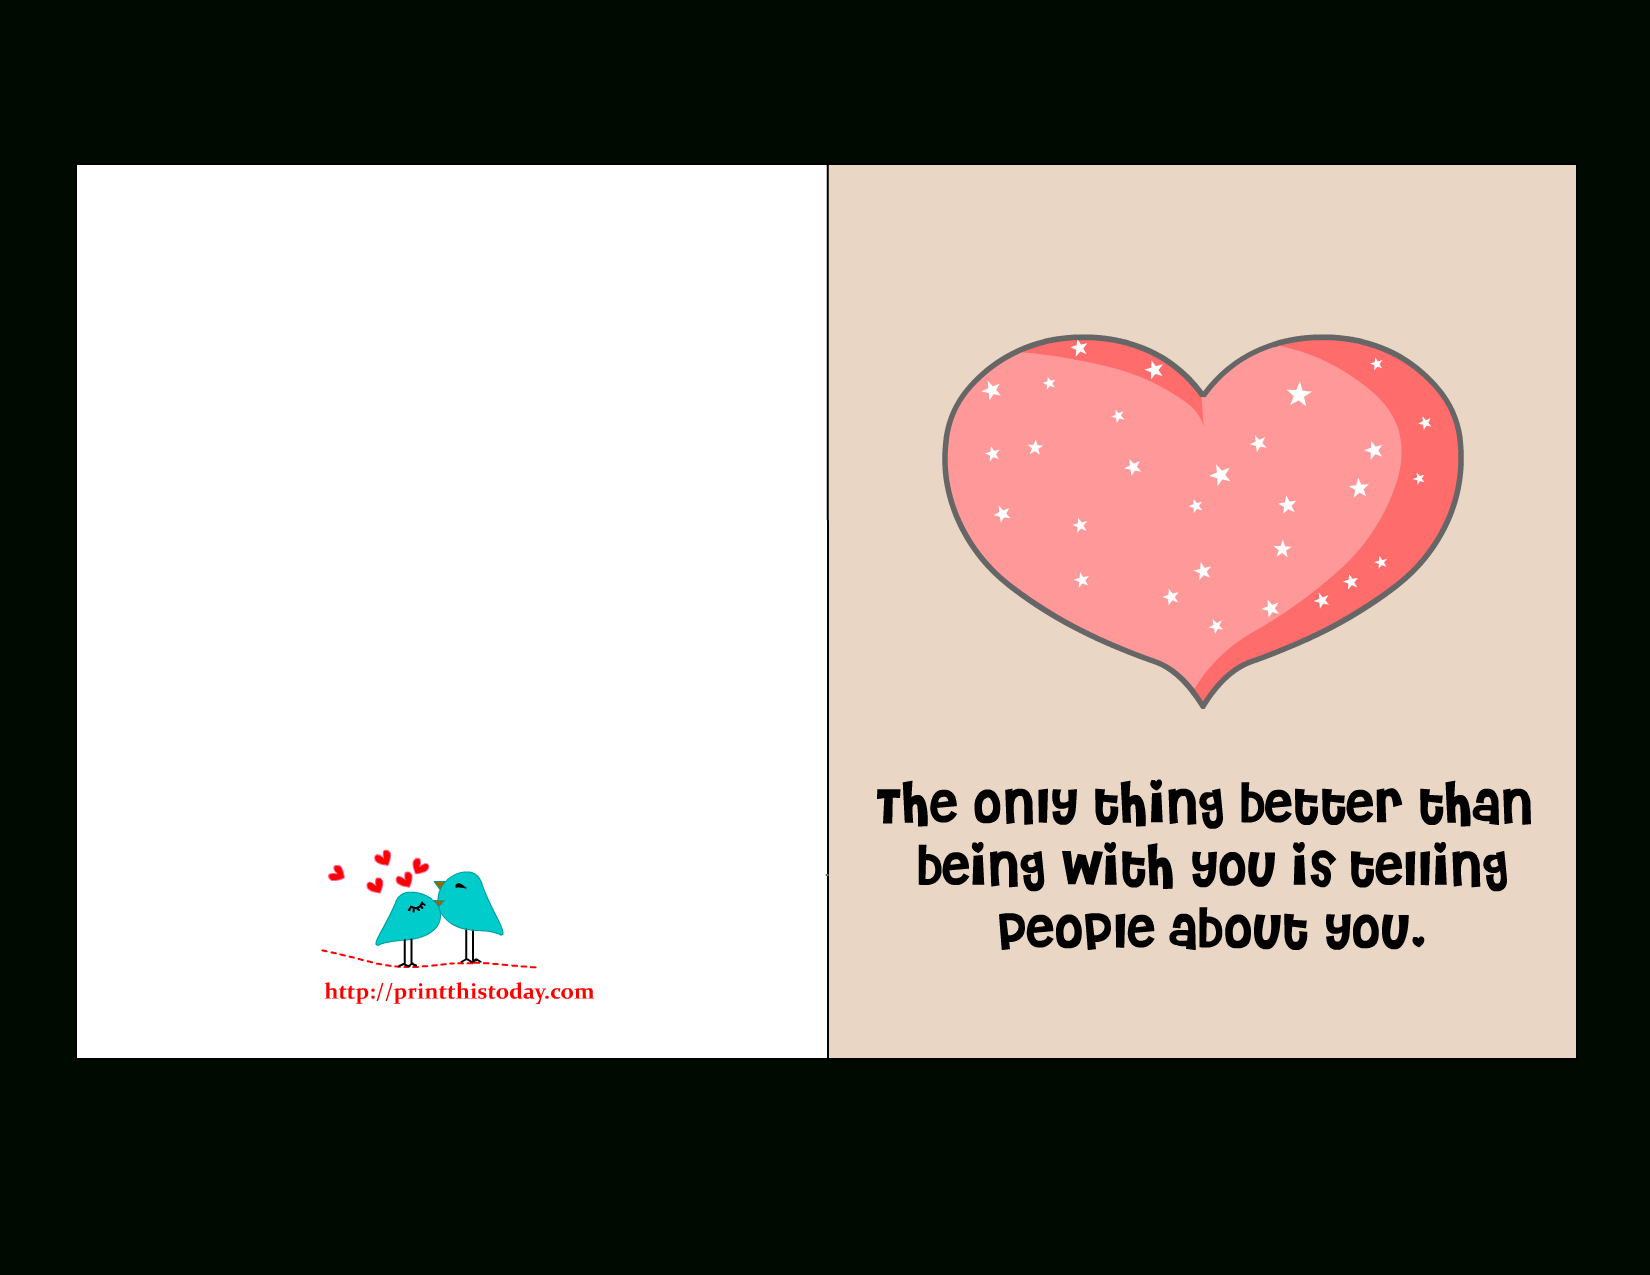 Free Printable Valentine Cards With Love Quotes - Free Printable Romantic Christmas Cards